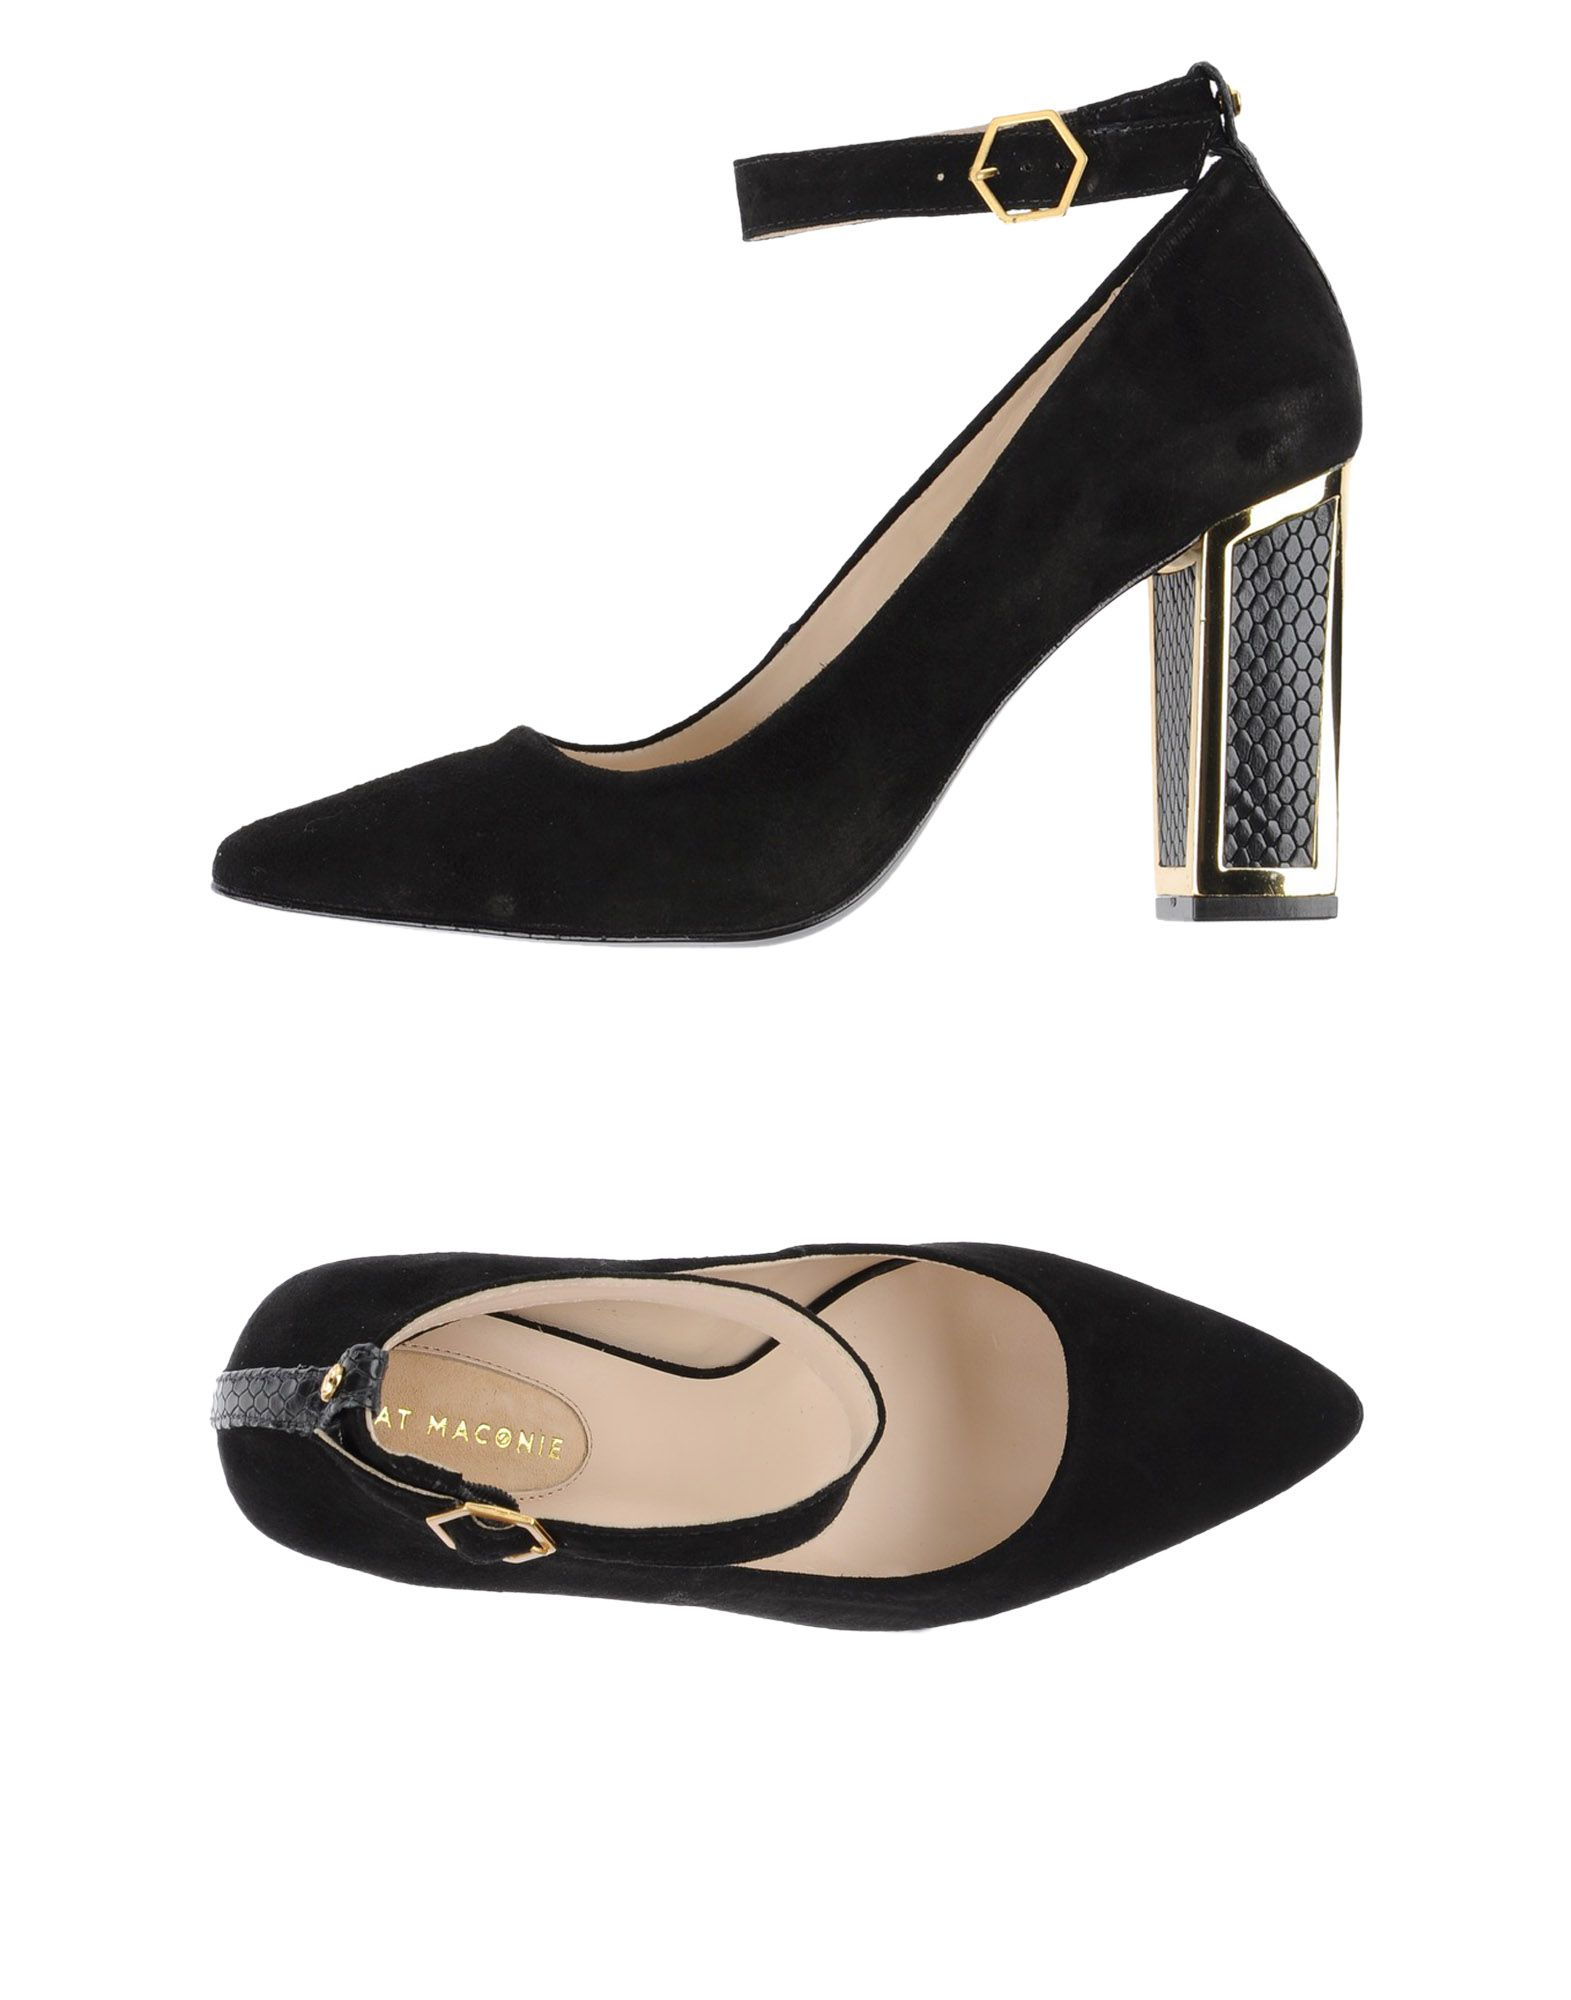 KAT MACONIE Courts sale shopping online clearance cheap online outlet with paypal order online clearance with credit card cheap collections 00dqqWc4rr